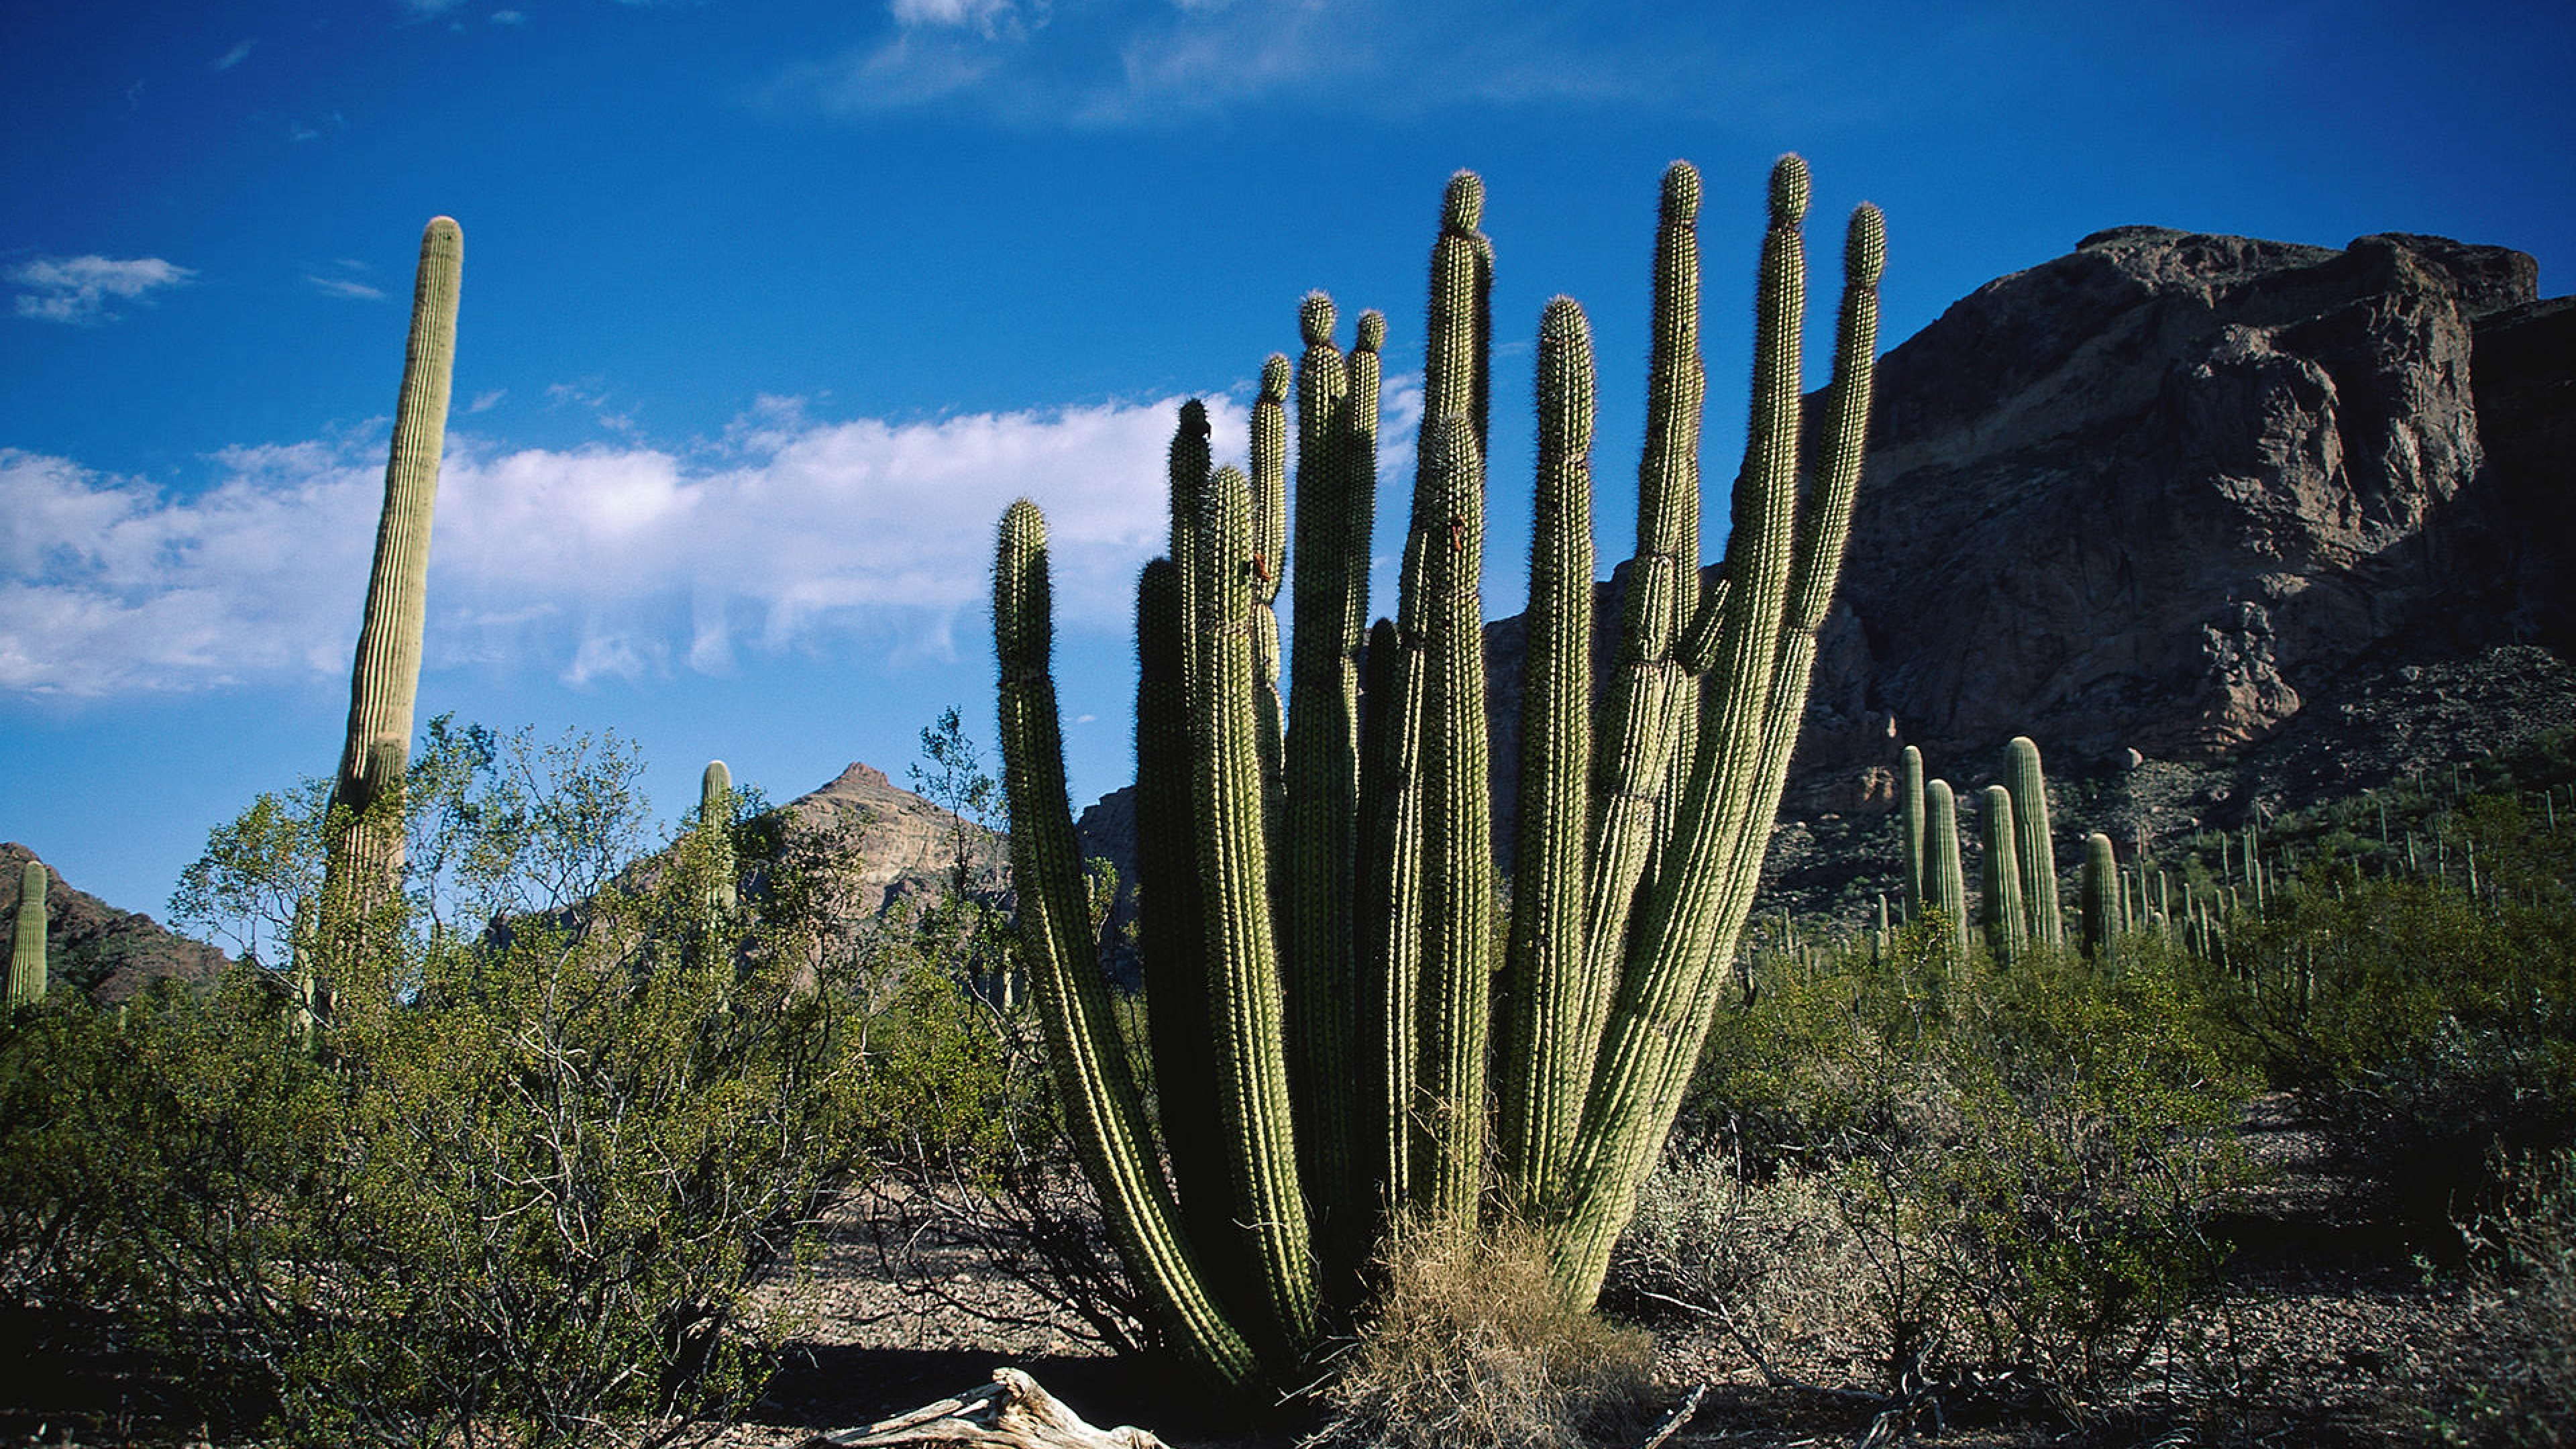 Image of Organ Pipe Cactus and Flowered Mountainside